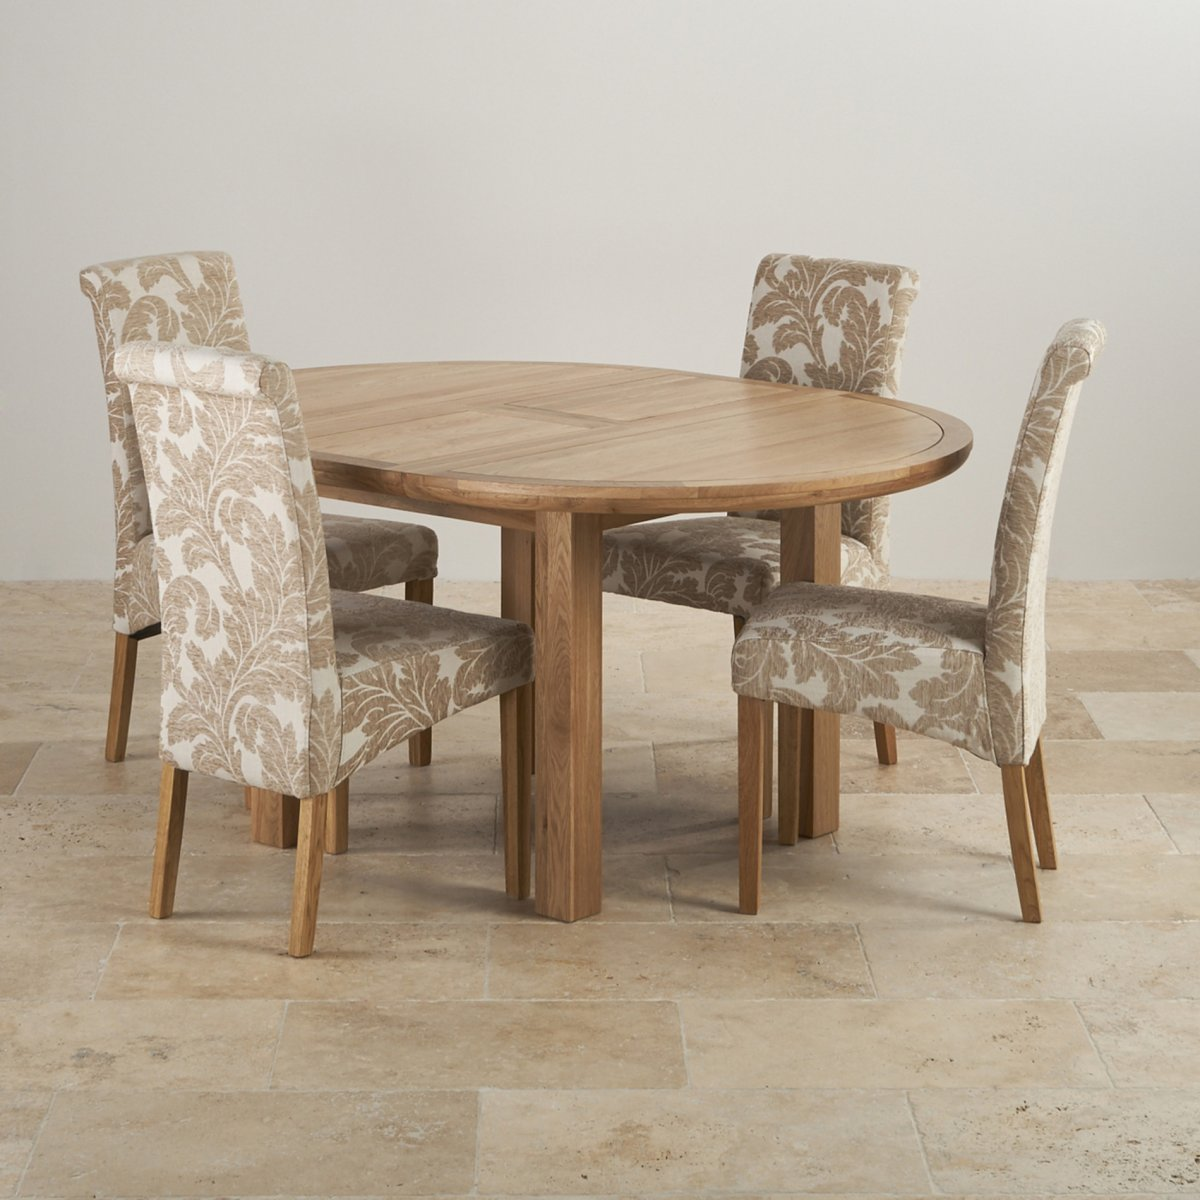 Knightsbridge oak dining set round extending table 4 chairs - Extended dining table sets ...